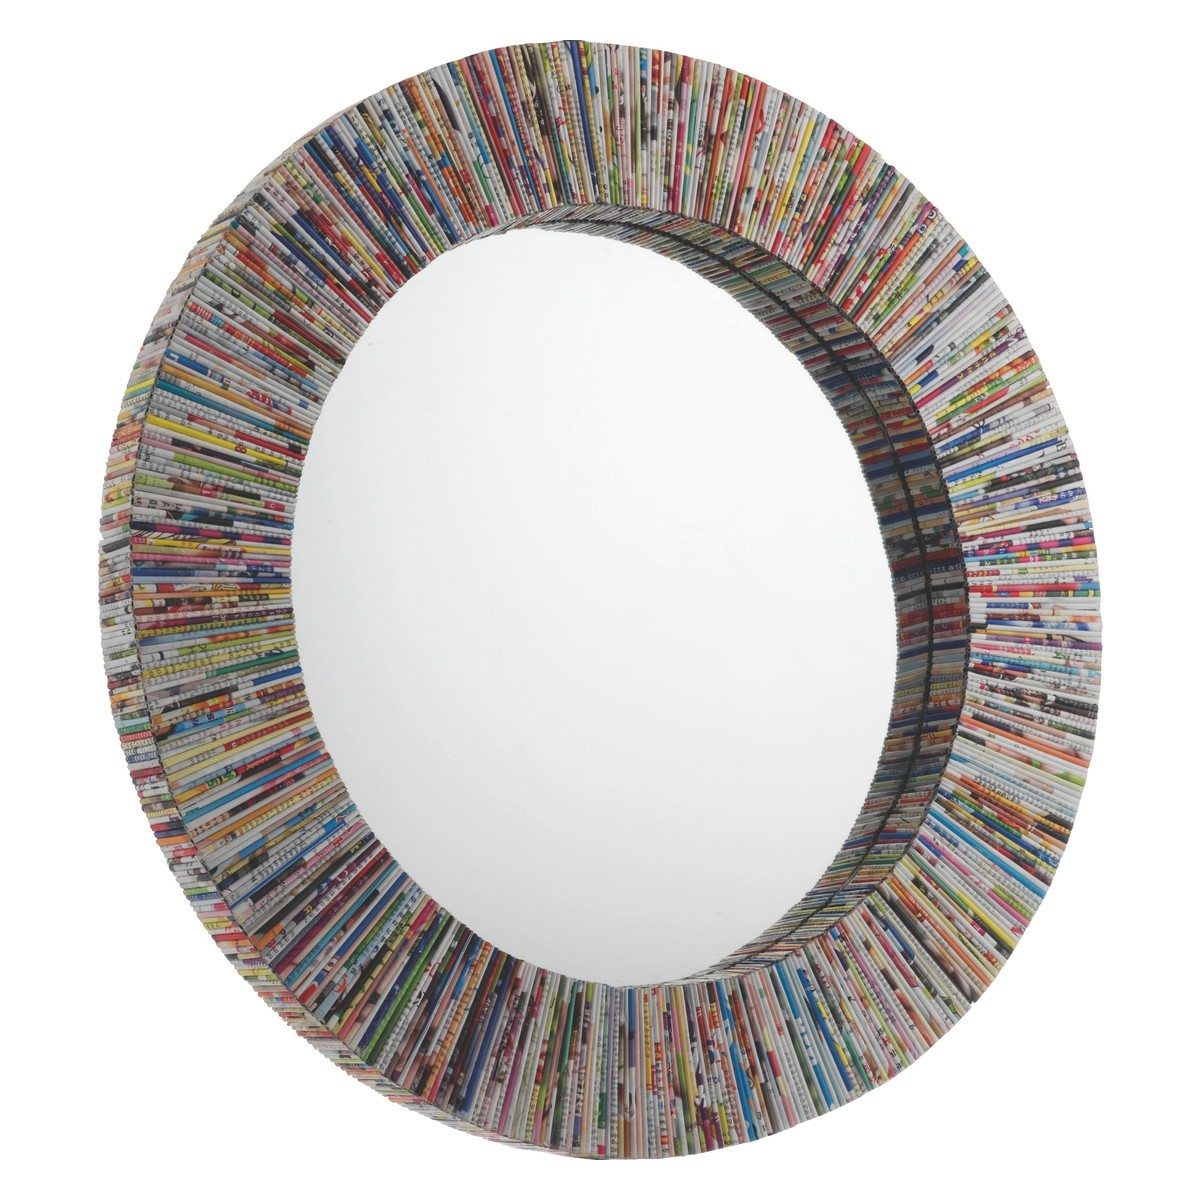 Cohen Multi Coloured Recycled Magazine Round Wall Mirror Buy Now Pertaining To Unusual Mirrors For Sale (Image 4 of 15)